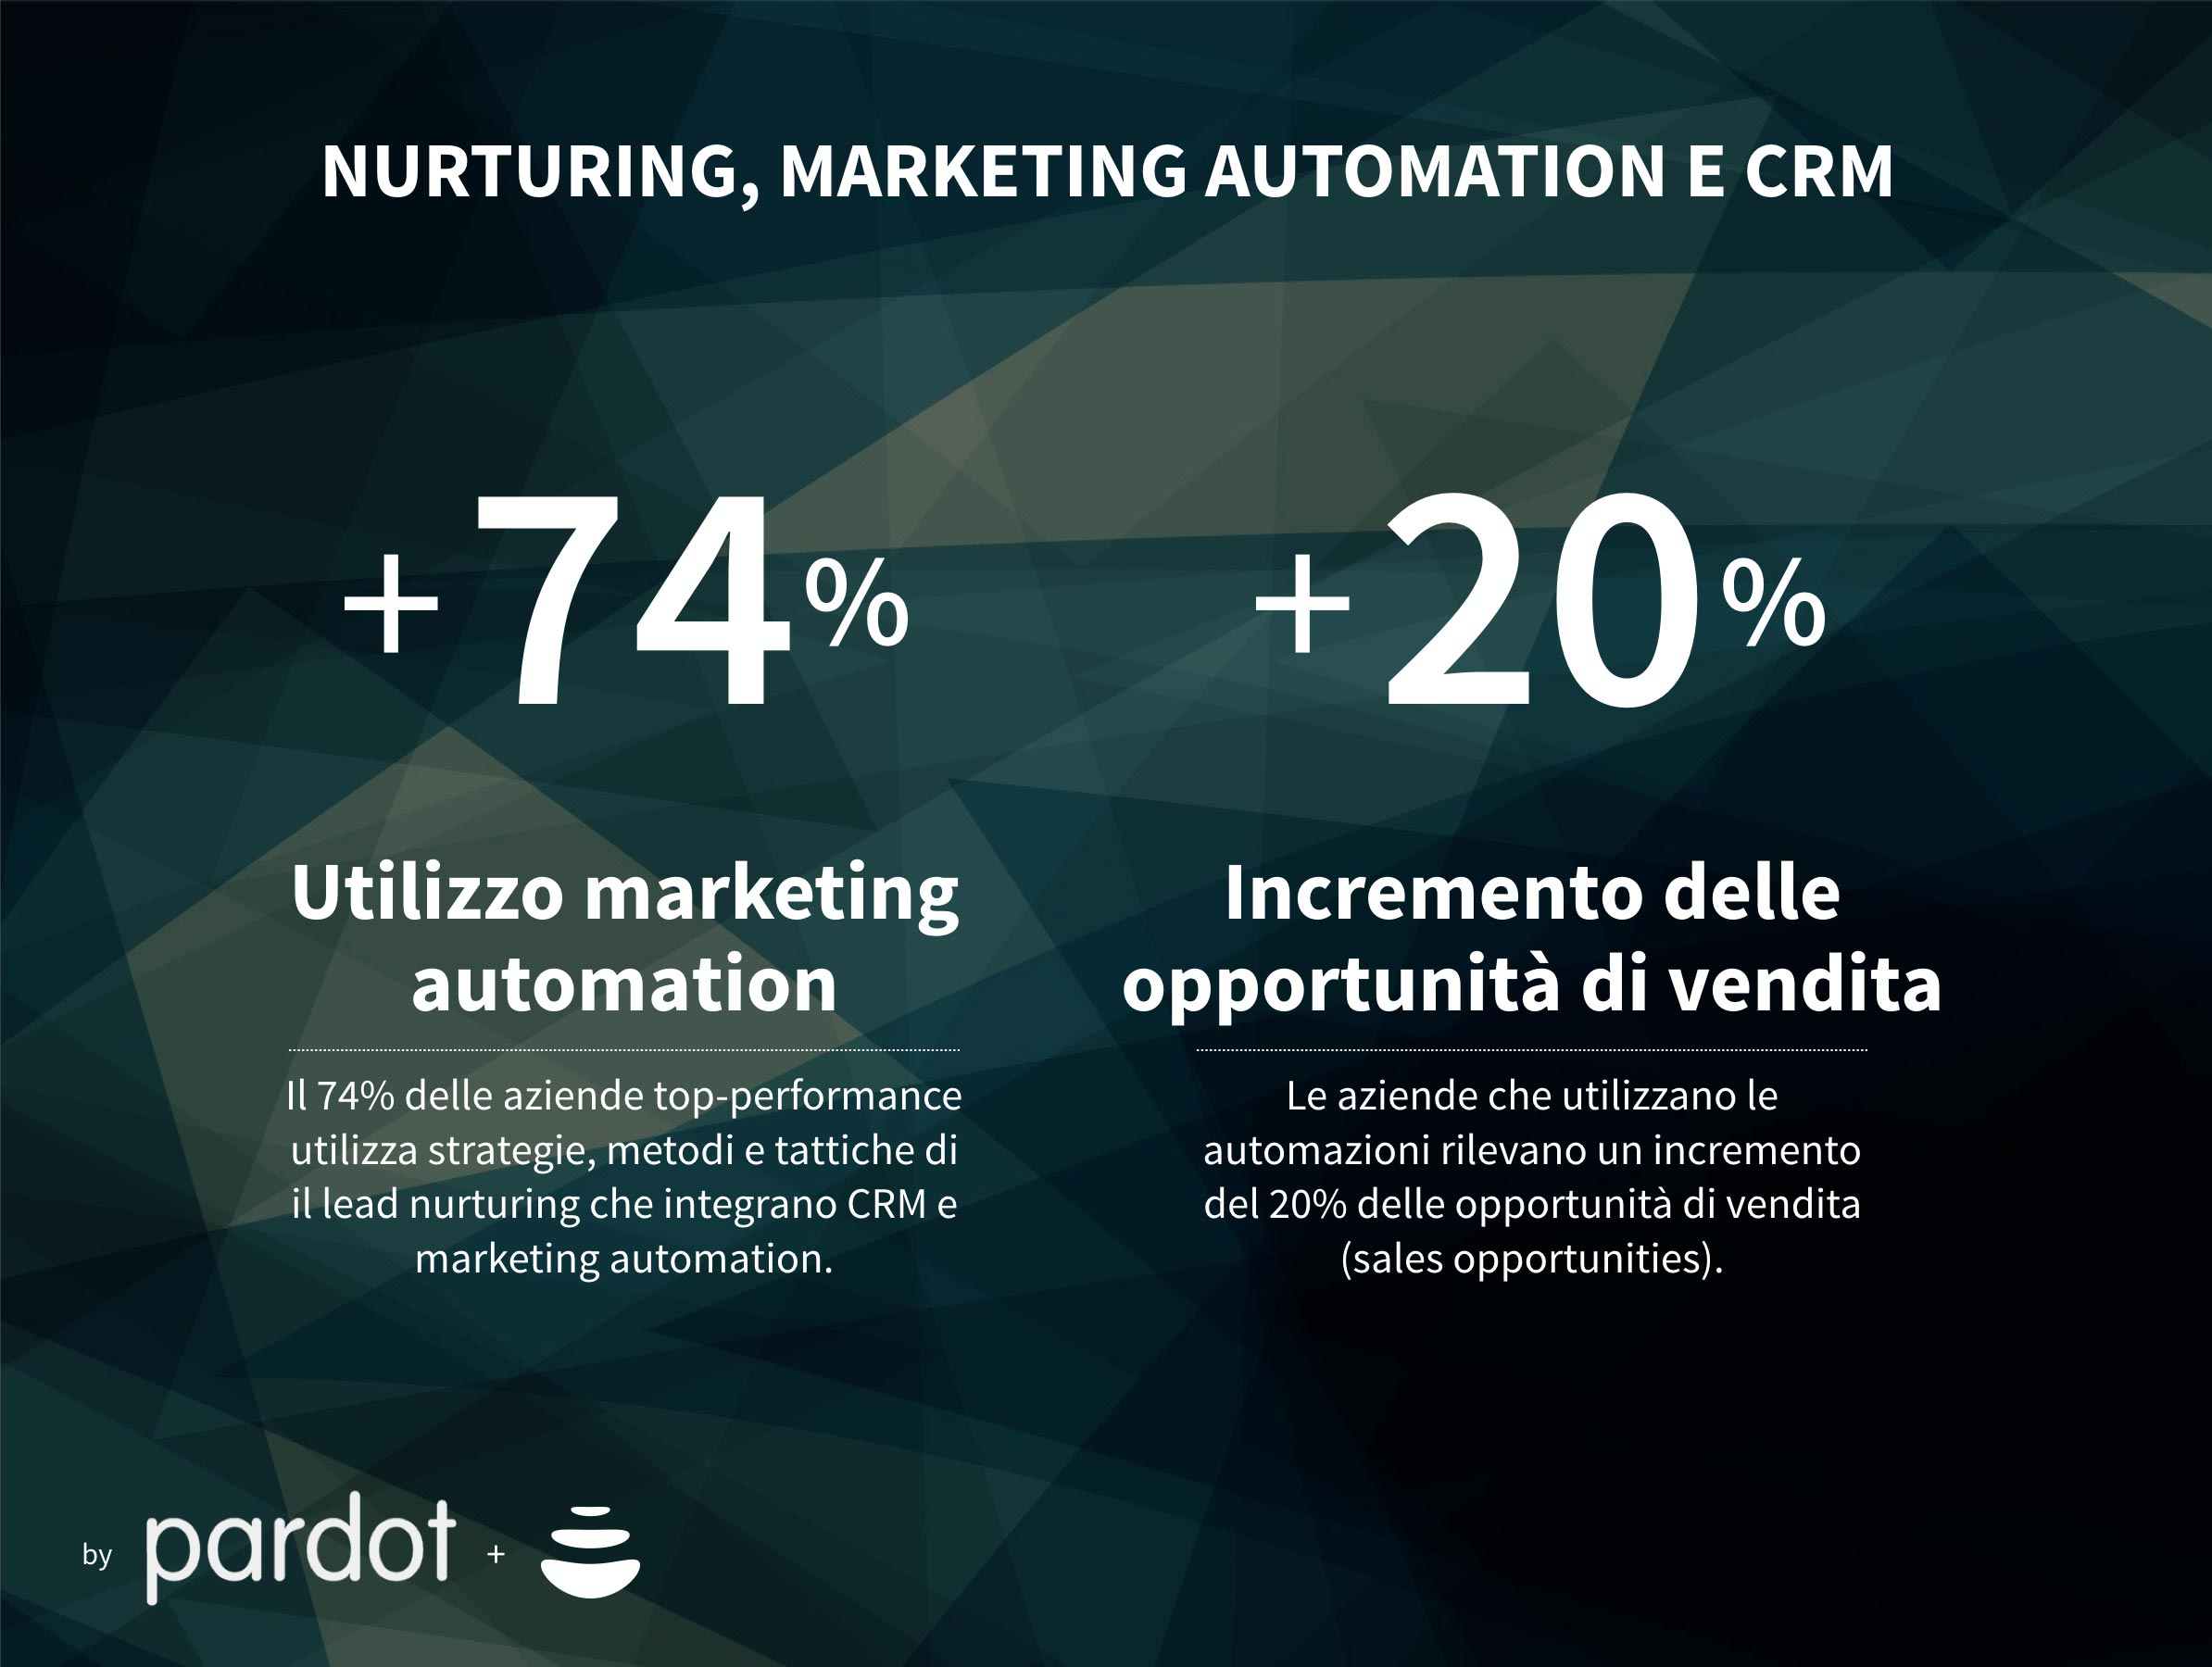 marketing automation, lead nurturing e crm